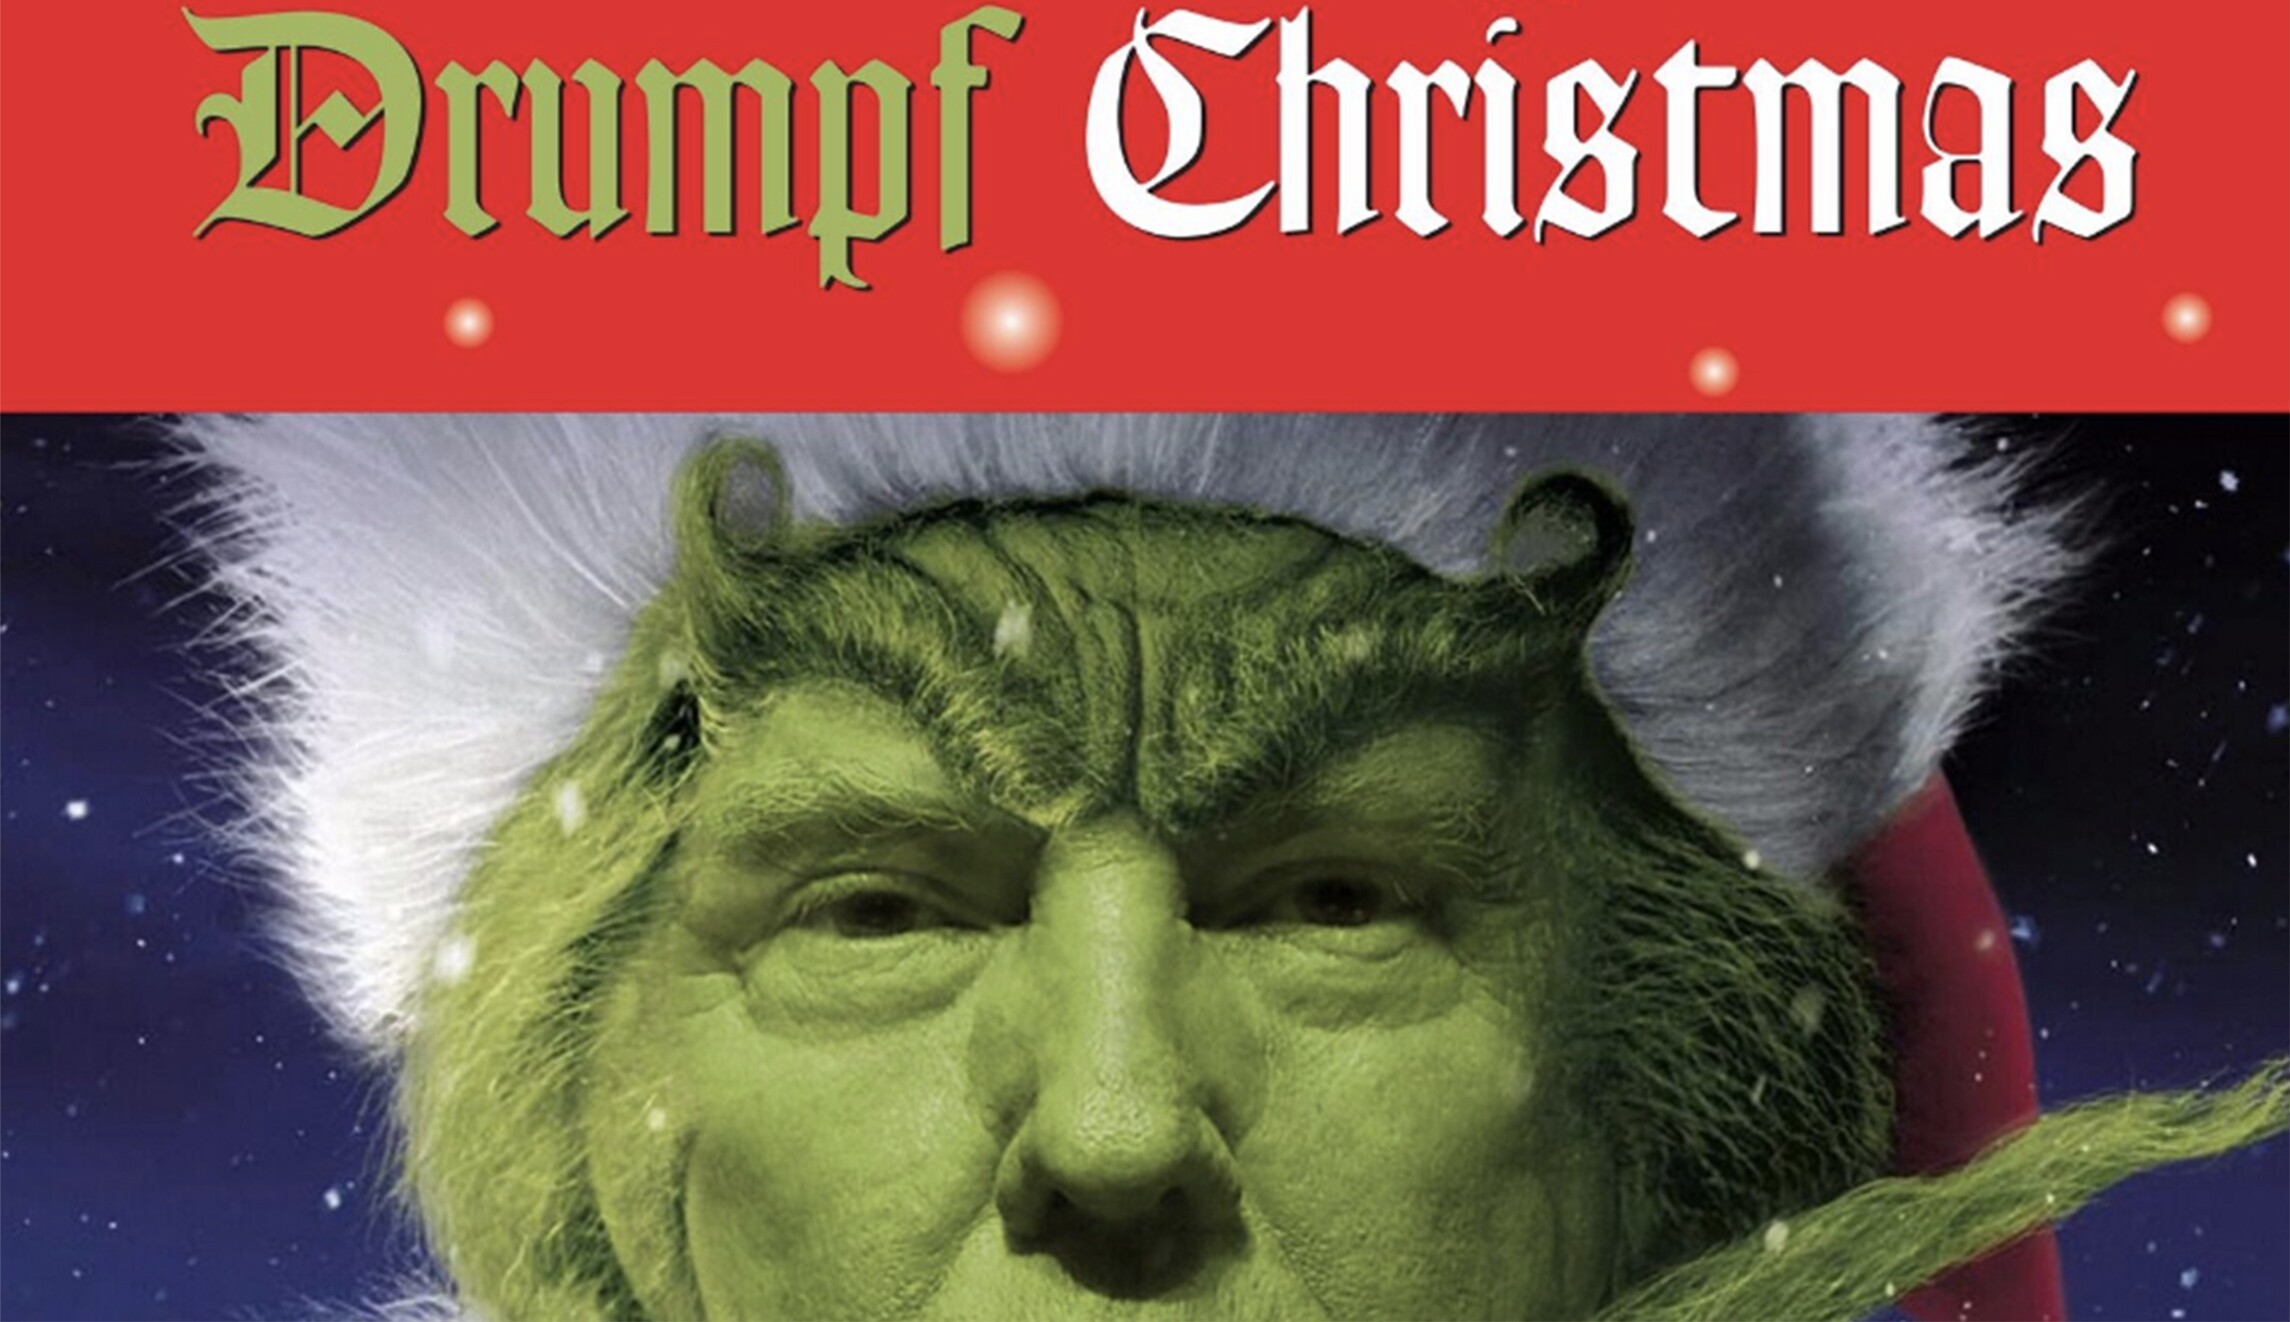 Joe Scarborough to release Christmas album on Trump called \'A Very ...